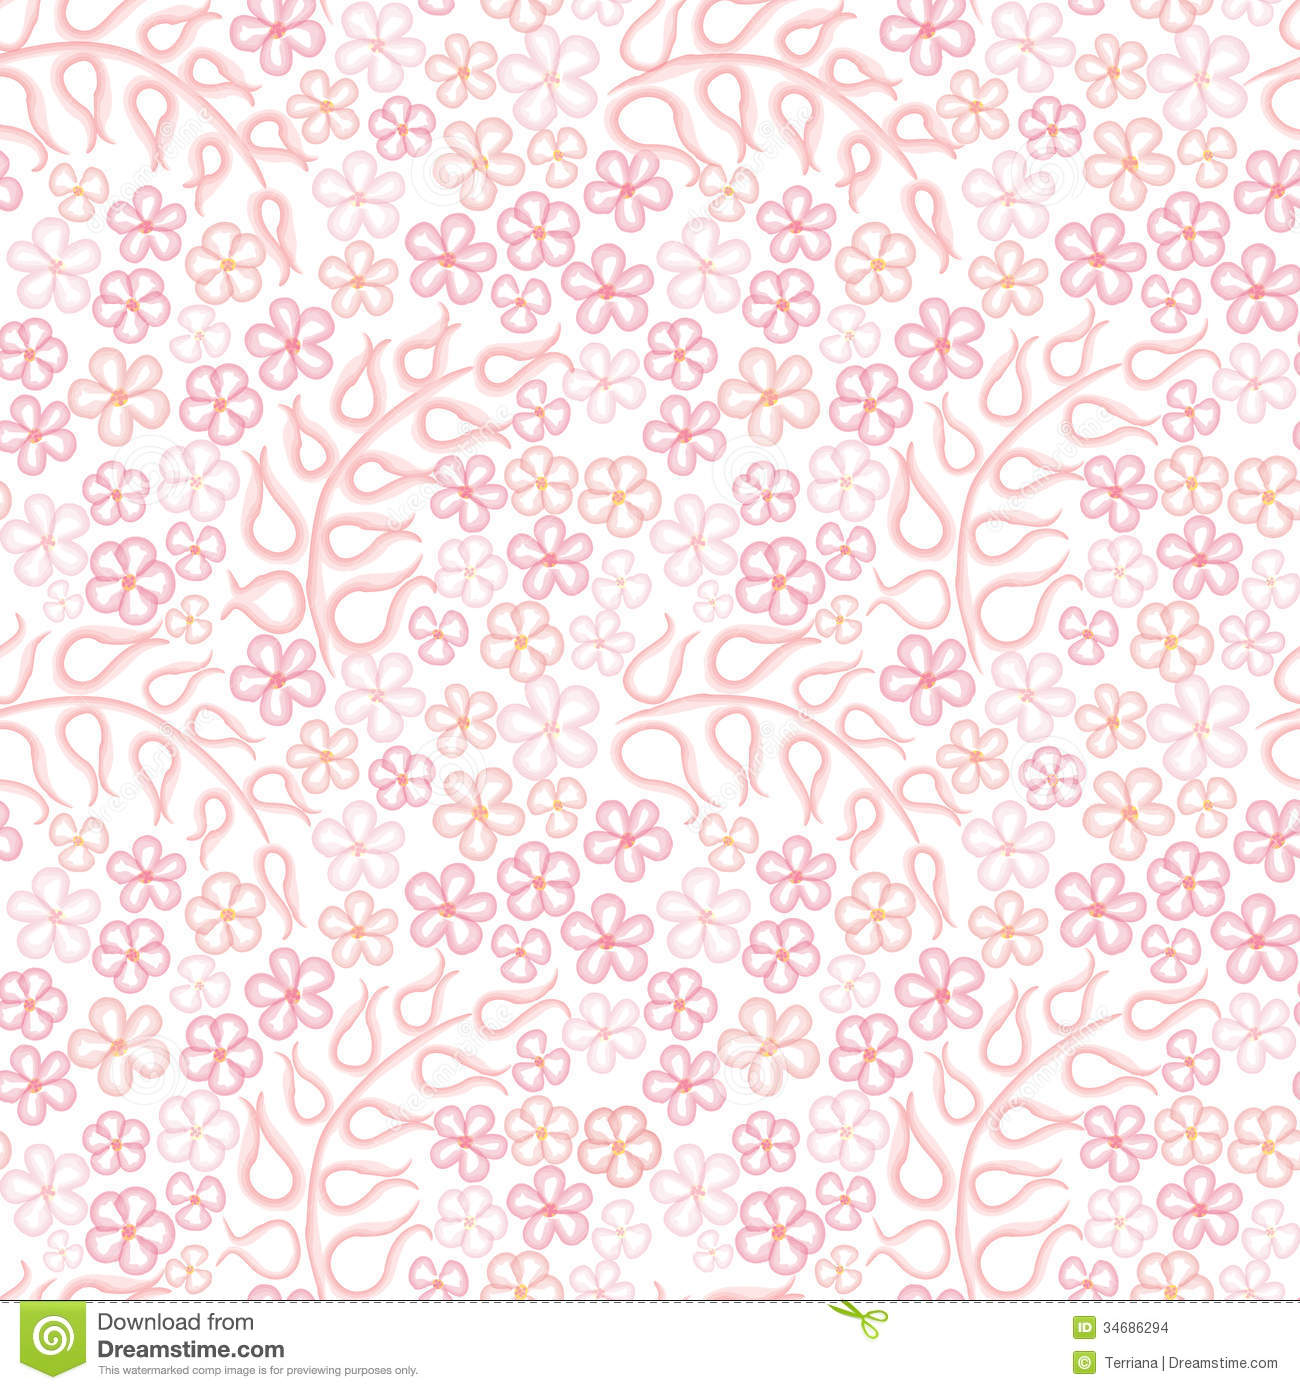 Pink floral seamless vector background floral hrysanthemum seamless - Abstract Background Chamomile Floral Flower Pattern Pink Seamless